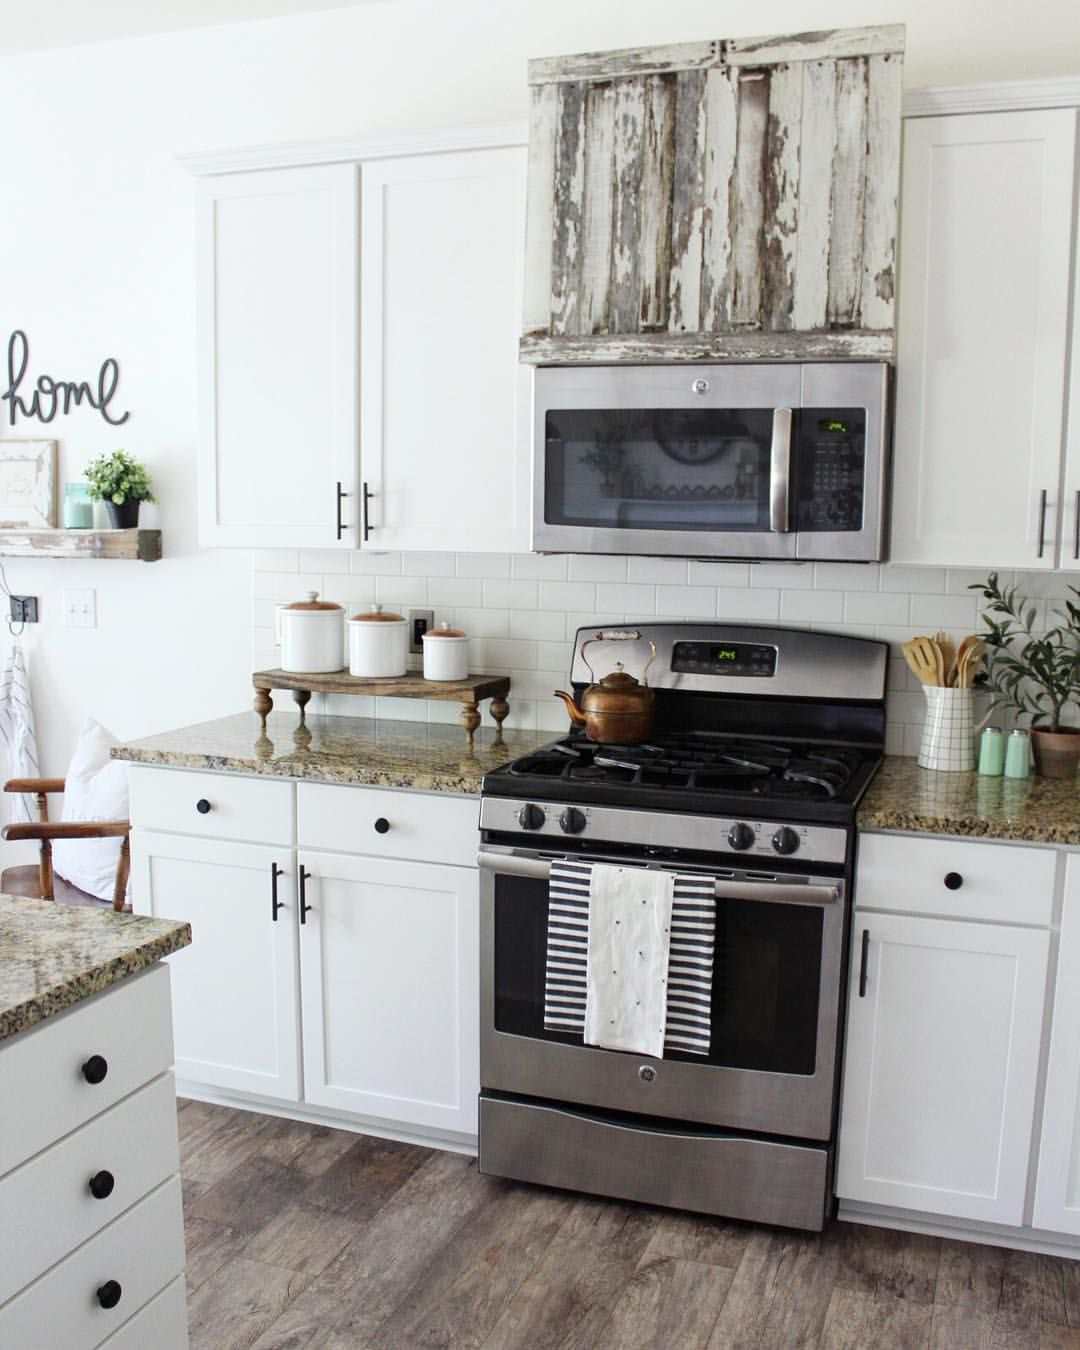 From builder-grade-boring to customized-with-character in ...